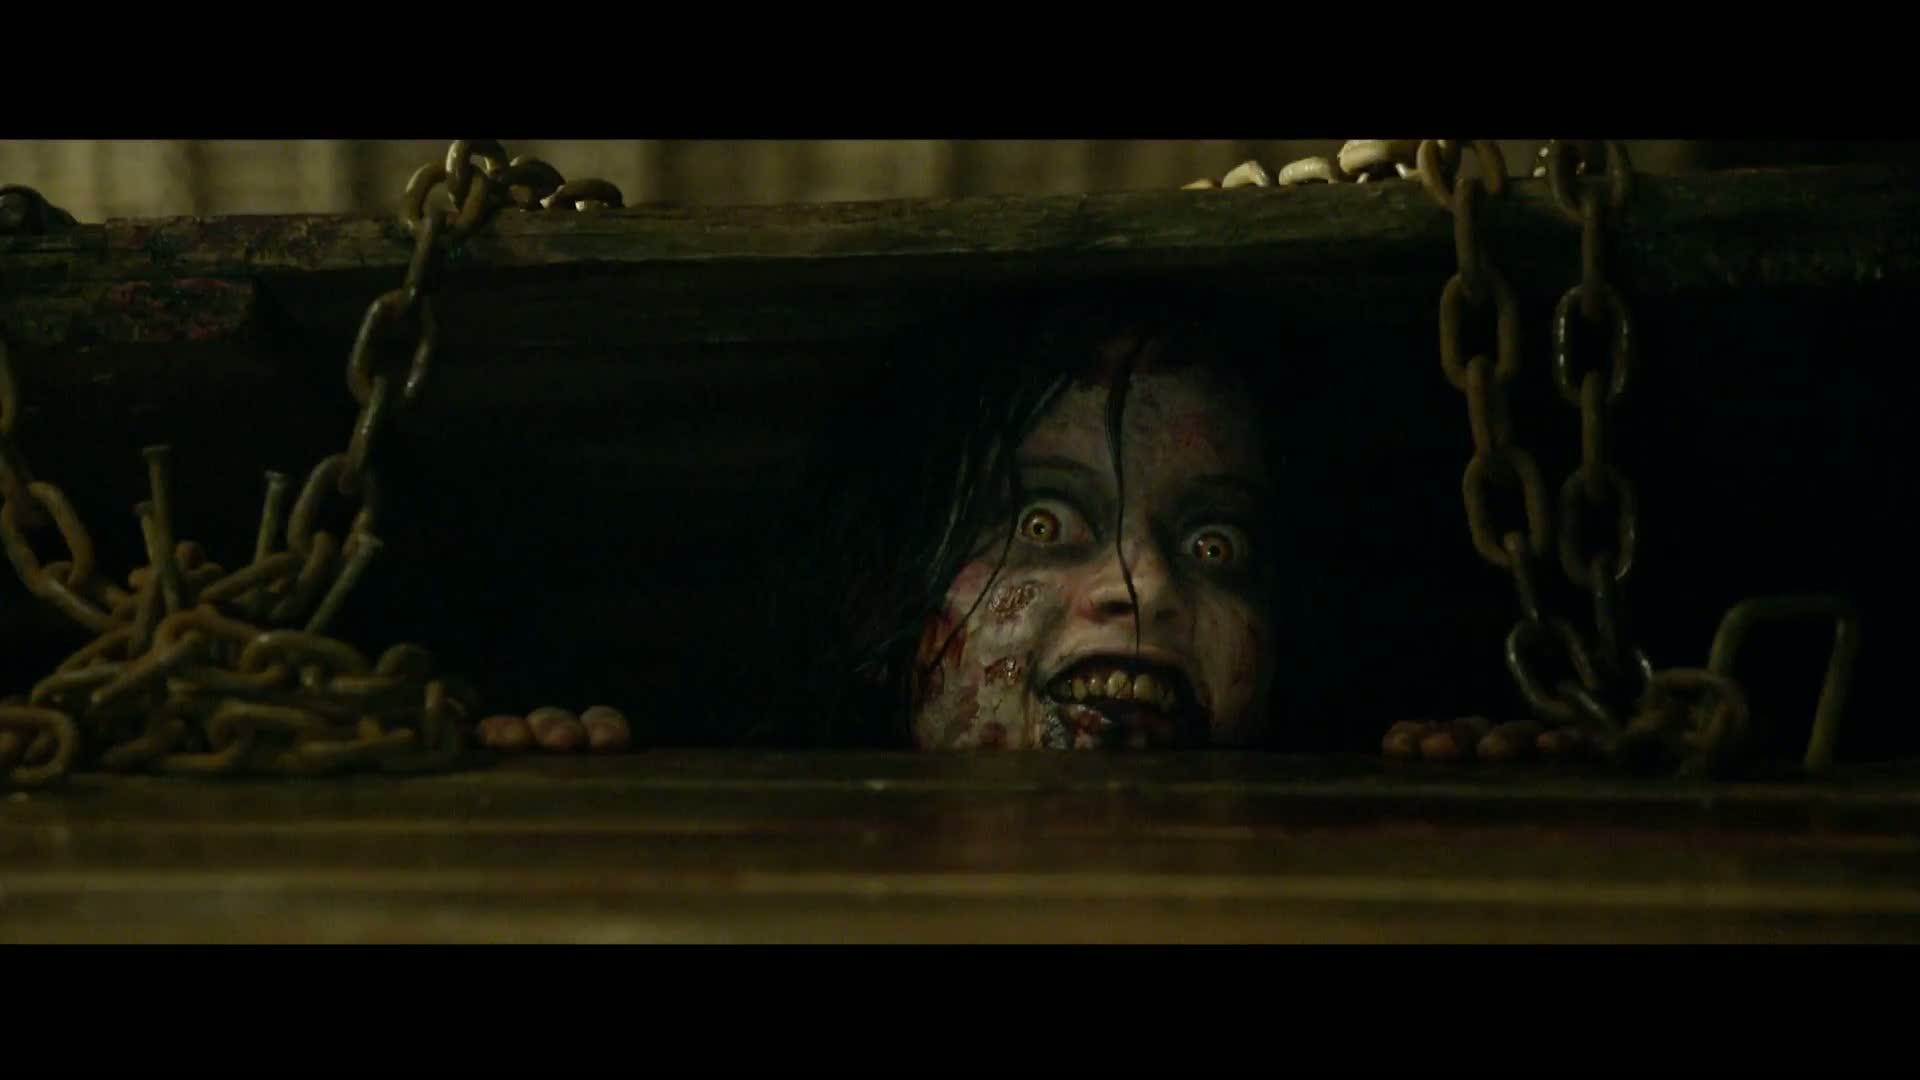 1920x1080 Evil Dead 2013 Images HD Wallpaper And Background Photos